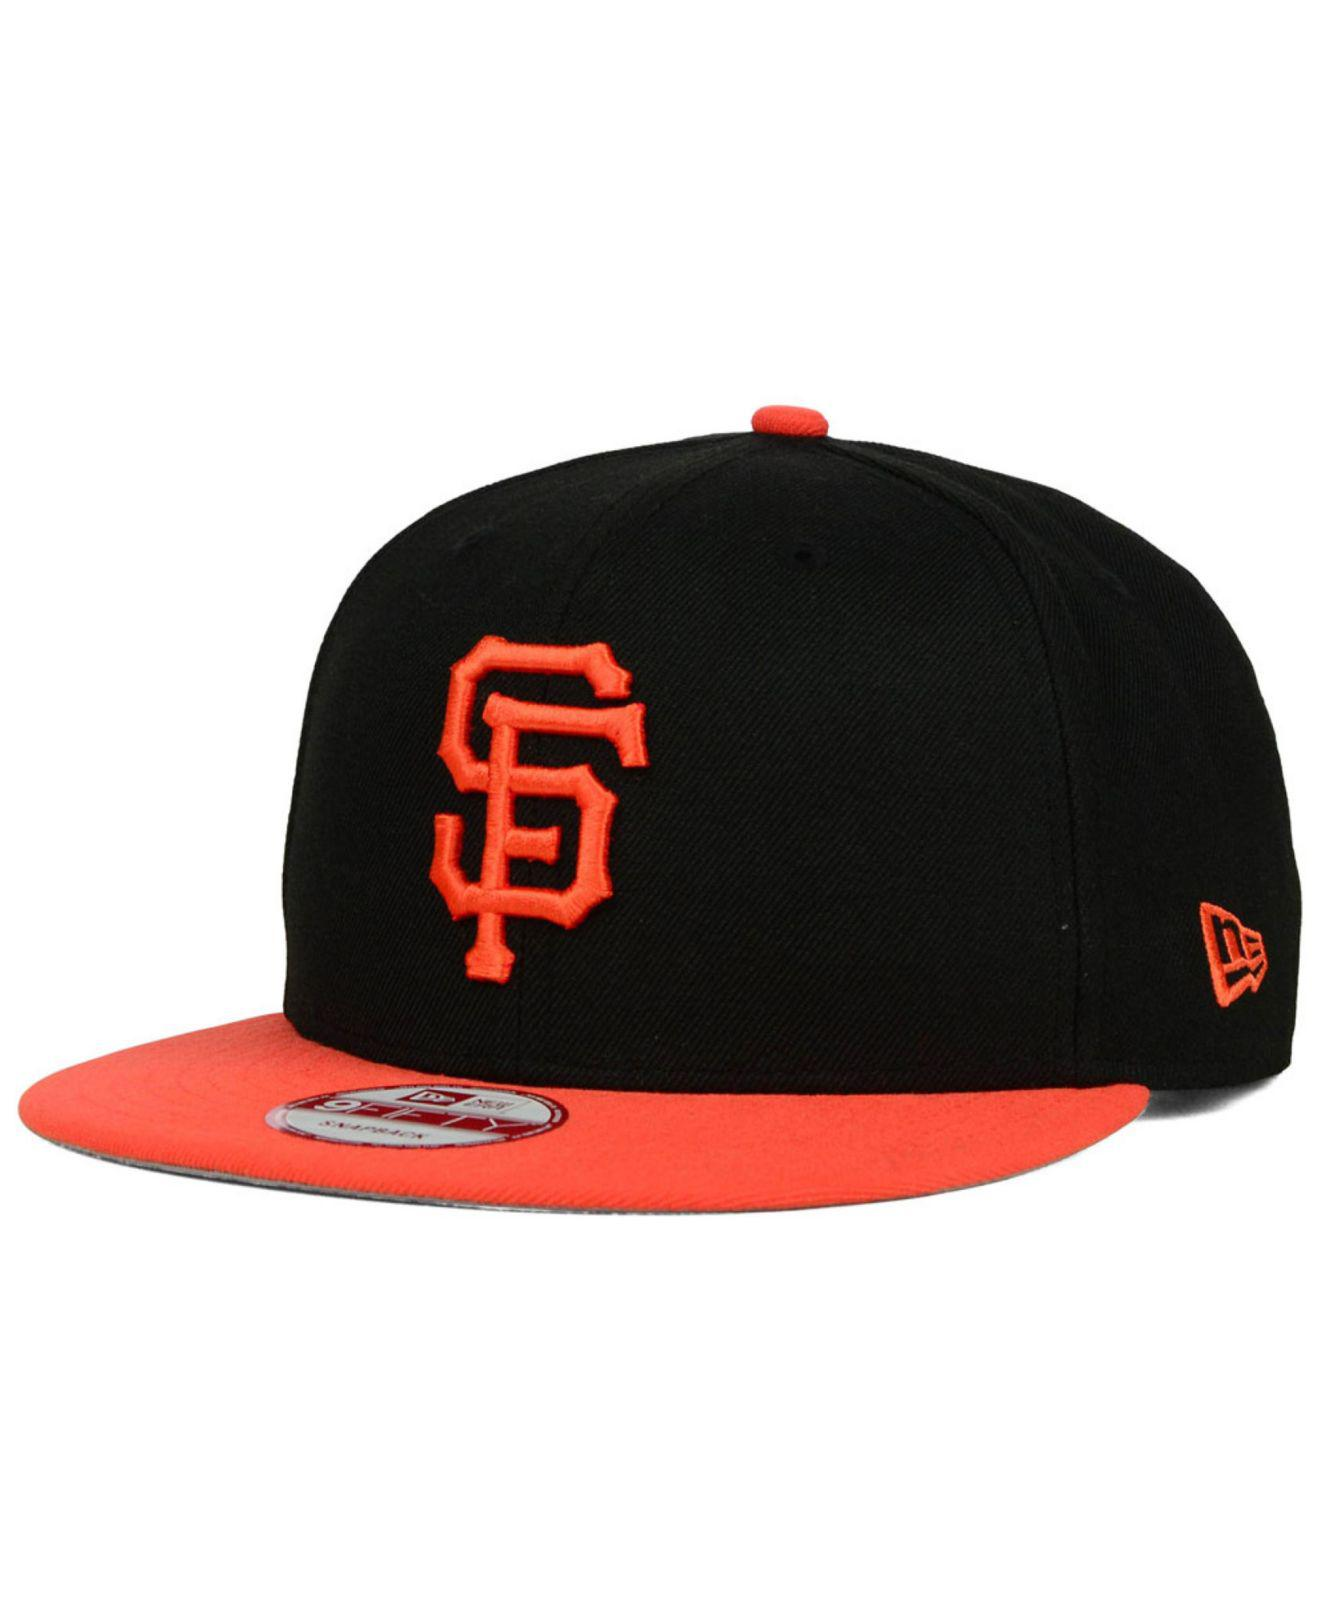 35634f9353a Lyst - KTZ San Francisco Giants 2-tone 9fifty Snapback Cap in Black ...